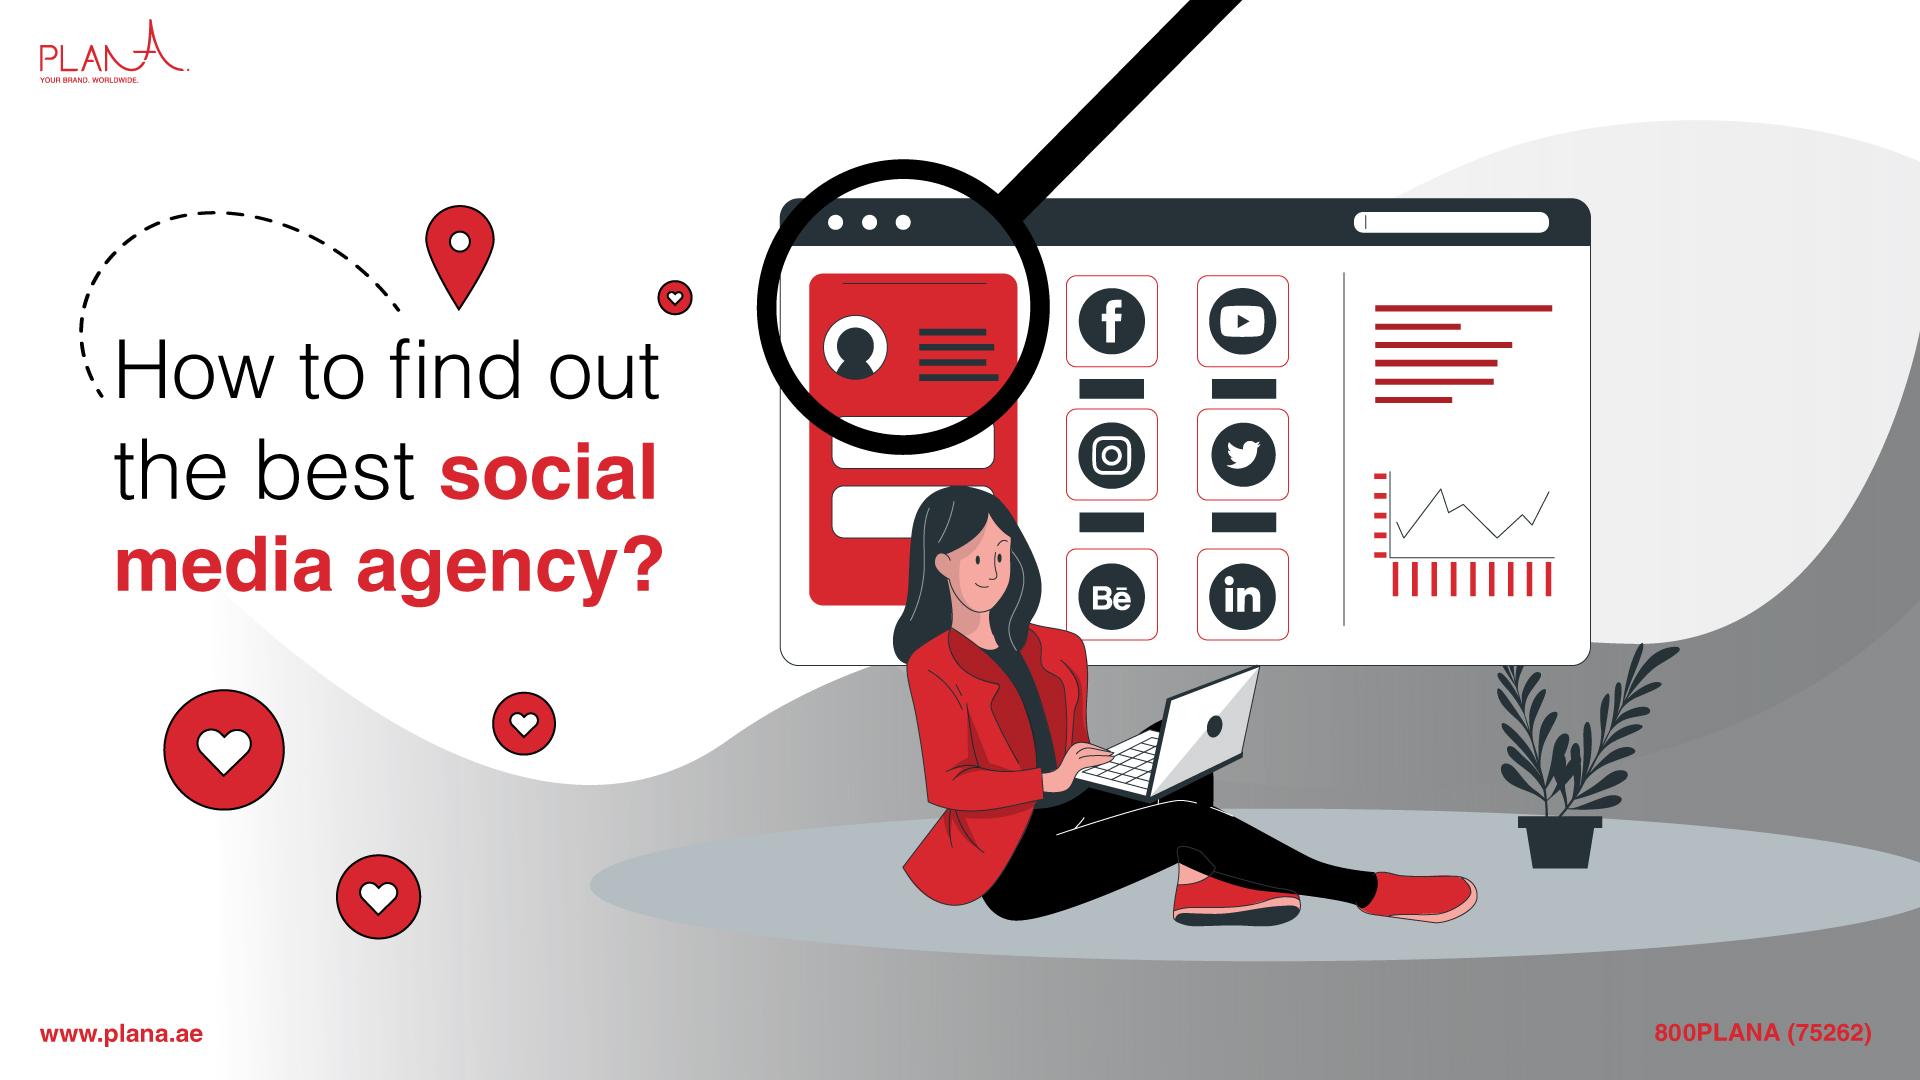 How to Find Out the Best Social Media Agency?